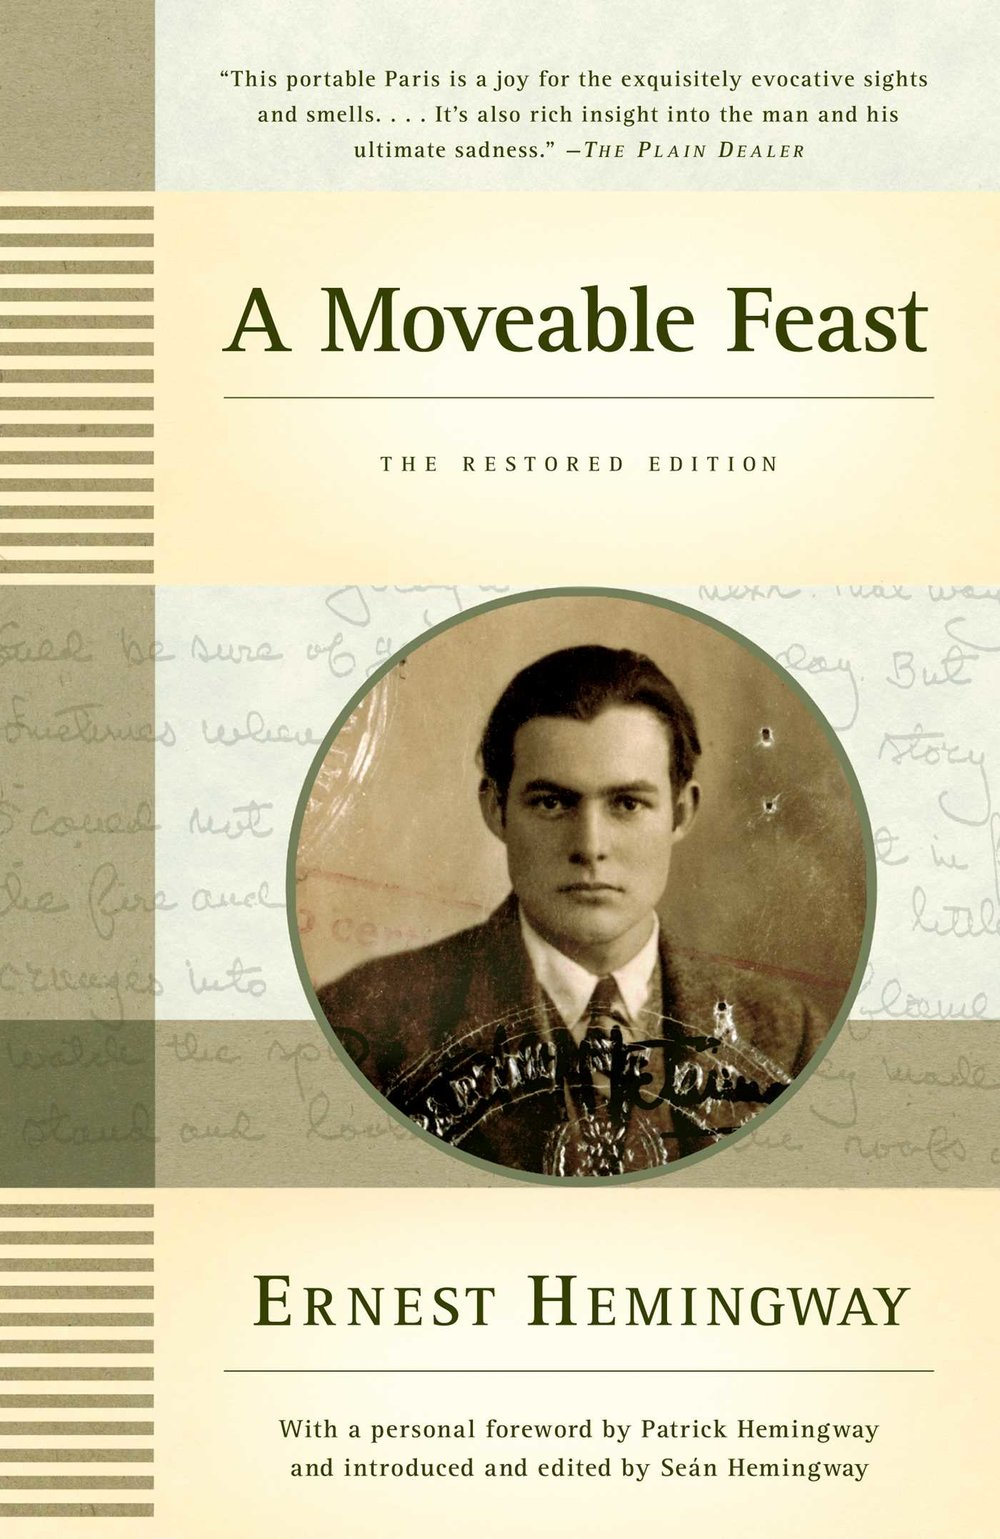 a moveable feast by ernest hemingway.jpg